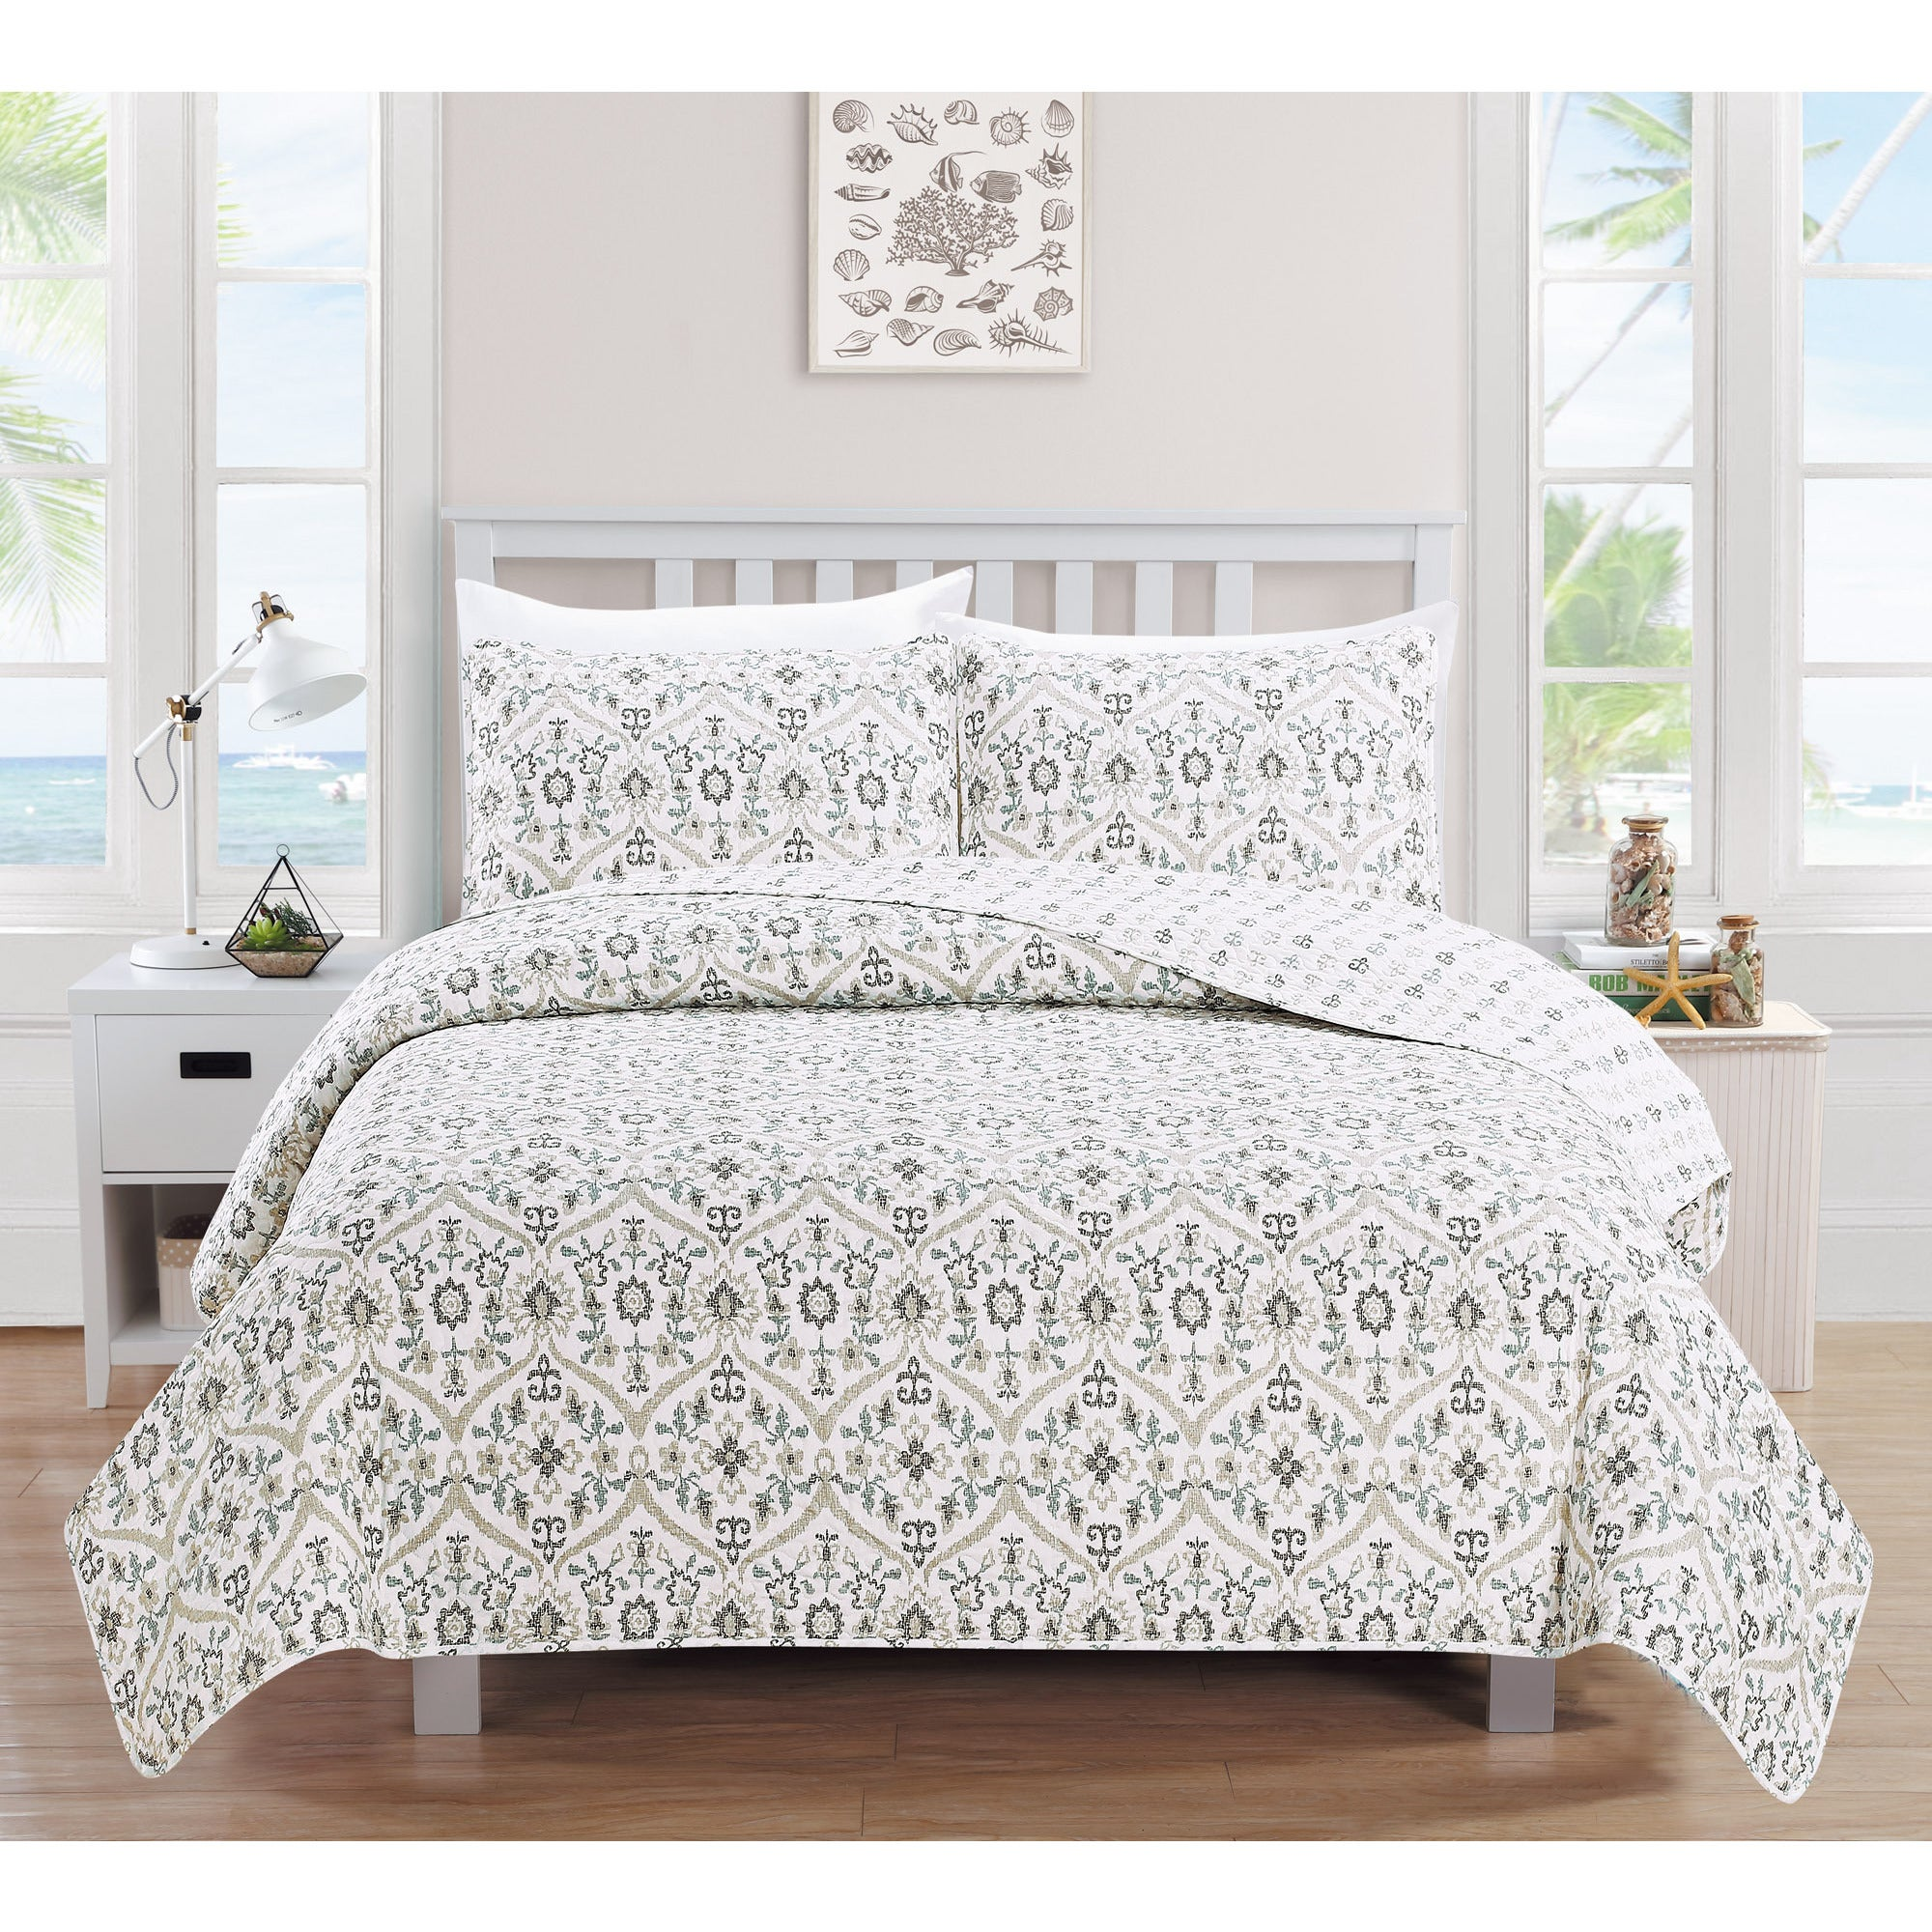 Candra Collection 3 Piece Quilt Set Free Shipping On Orders Over 45 13085879